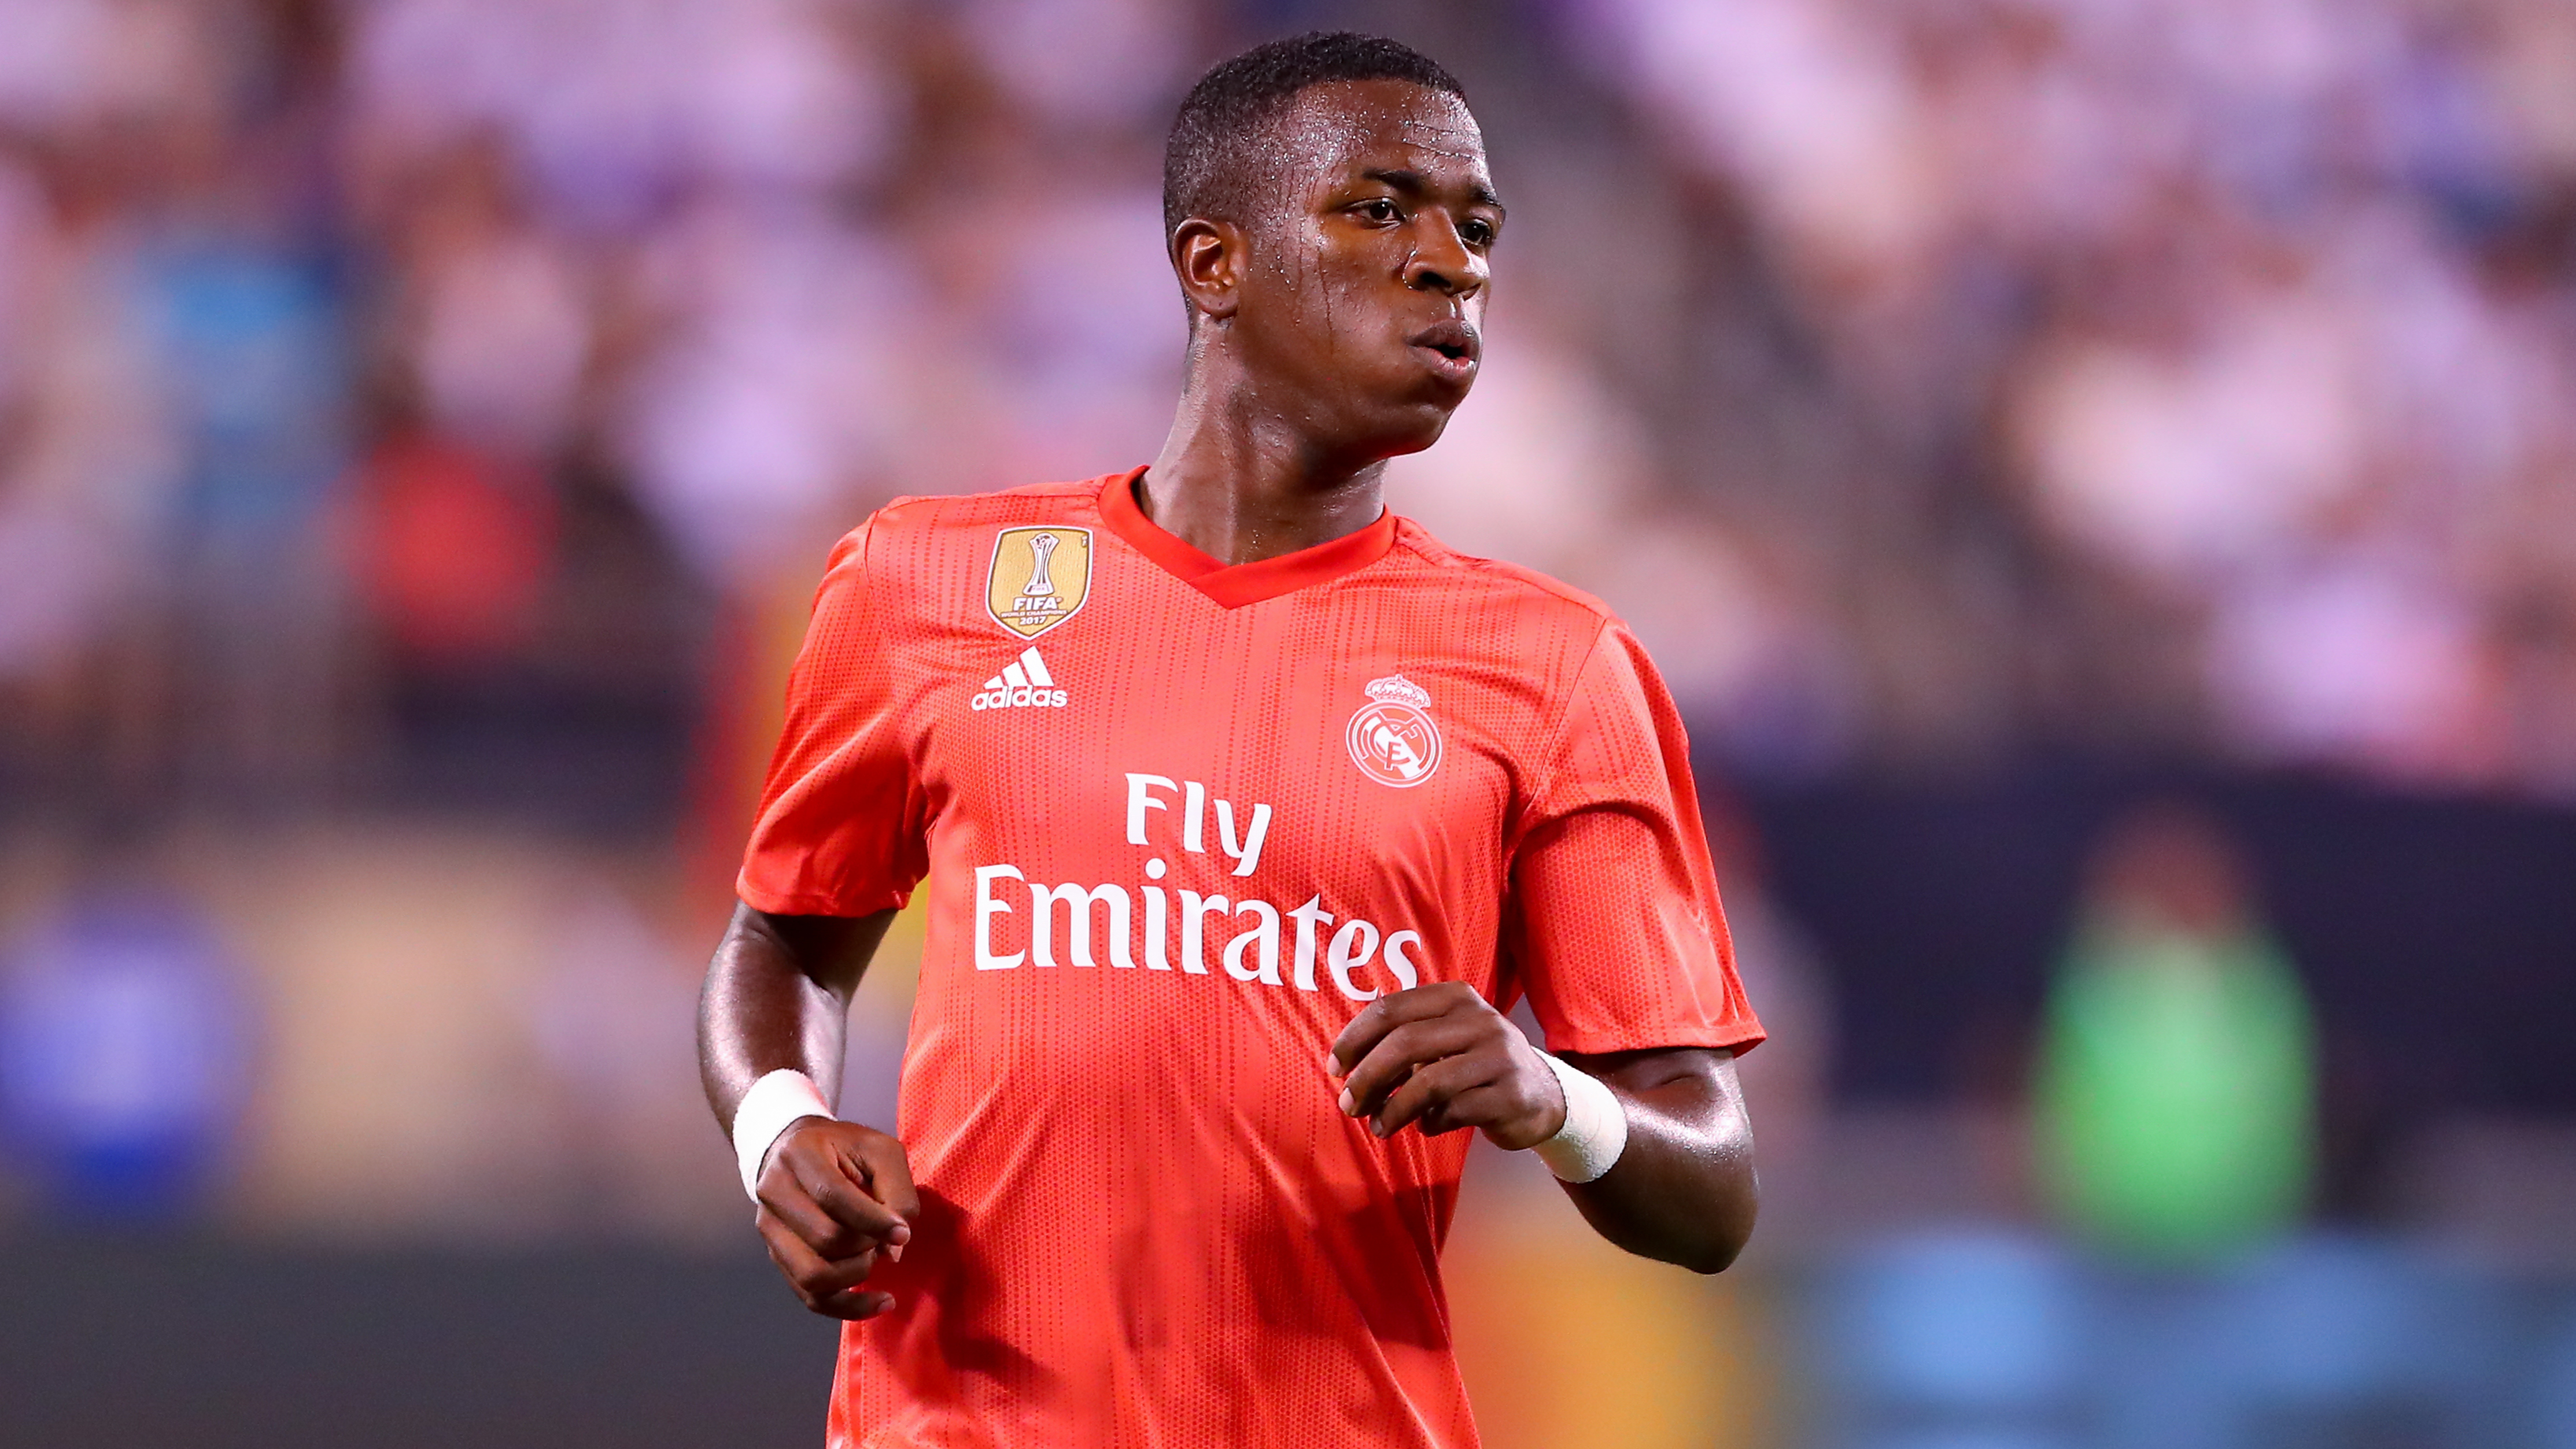 Real Madrid Youngster Vinícius Júnior Included In Champions League Squad